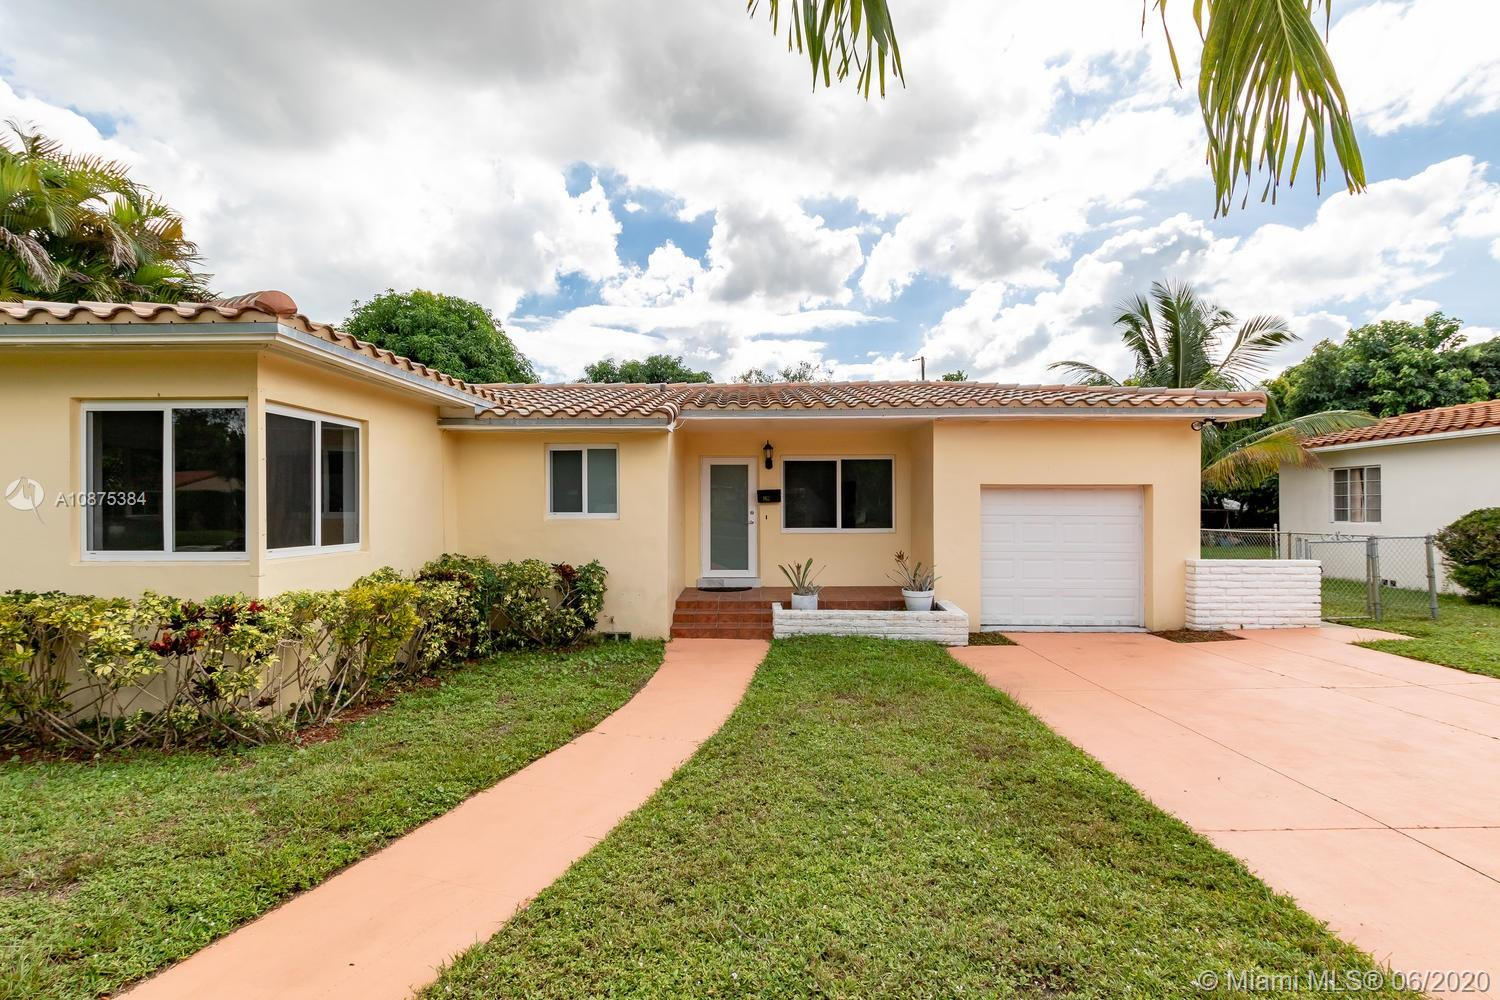 162 NW 108 ST  For Sale A10875384, FL